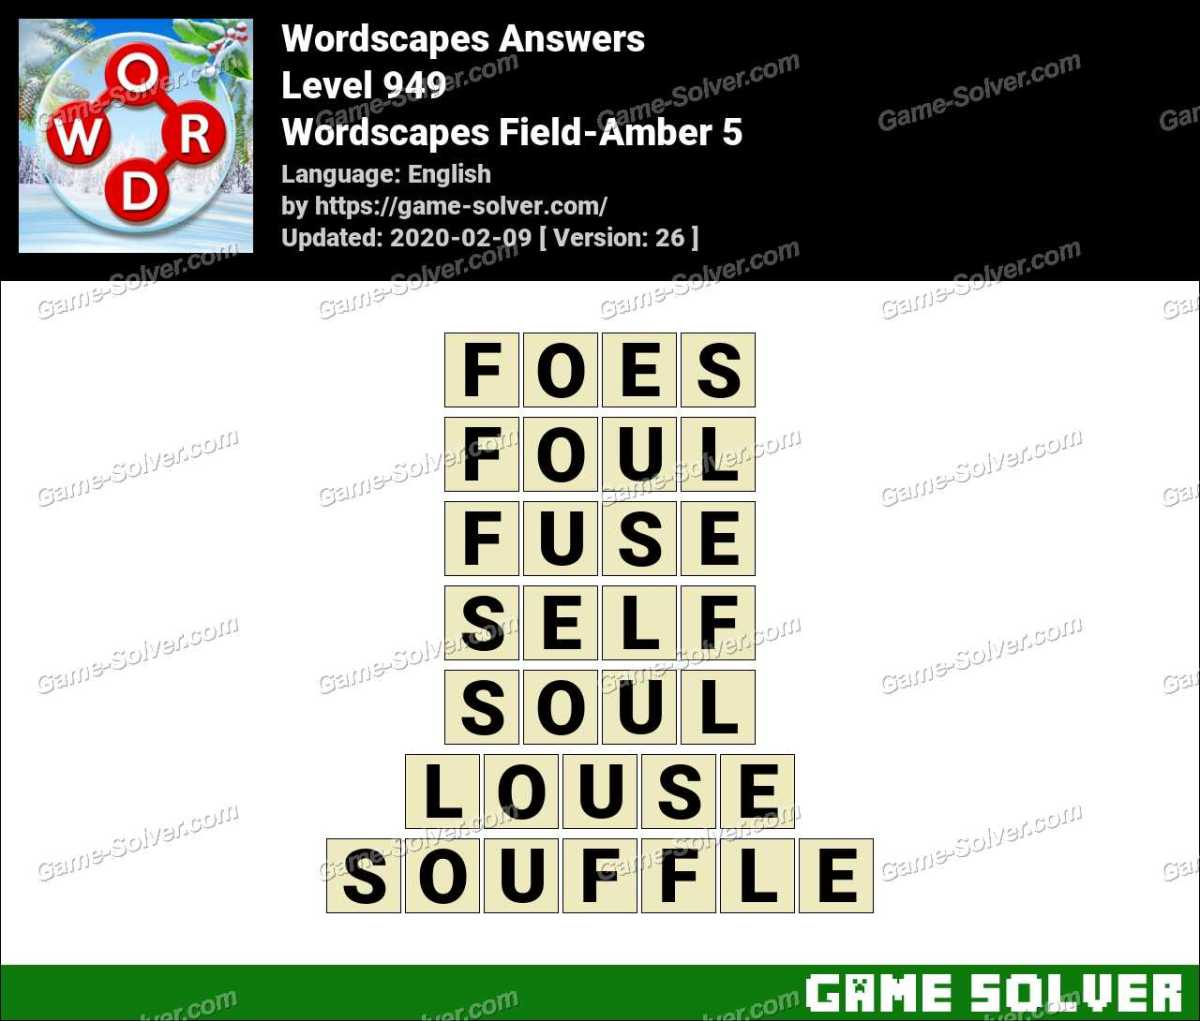 Wordscapes Field-Amber 5 Answers